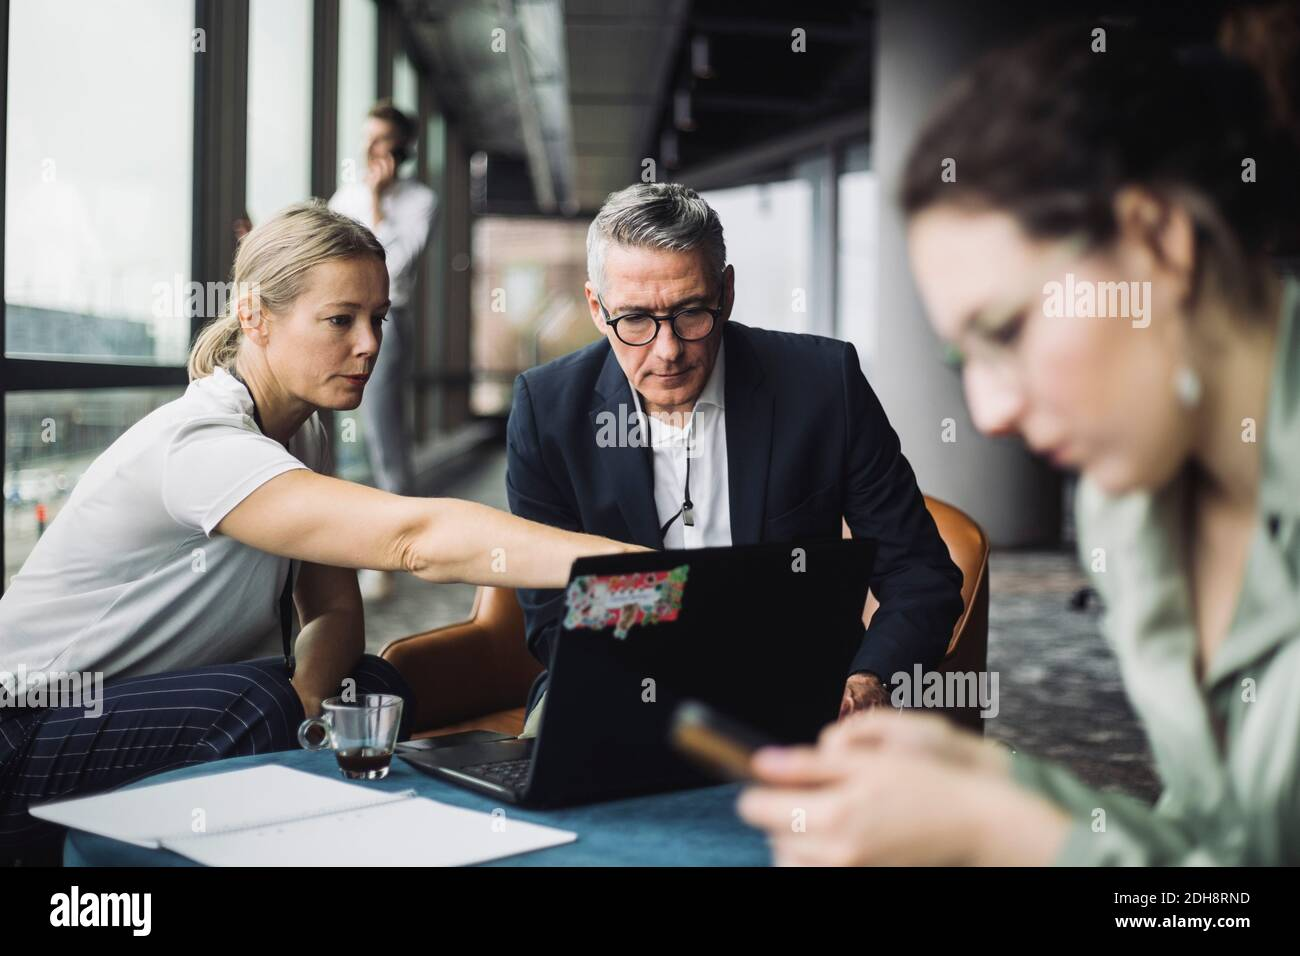 IT professional assisting contemplating businessman in office corridor Stock Photo